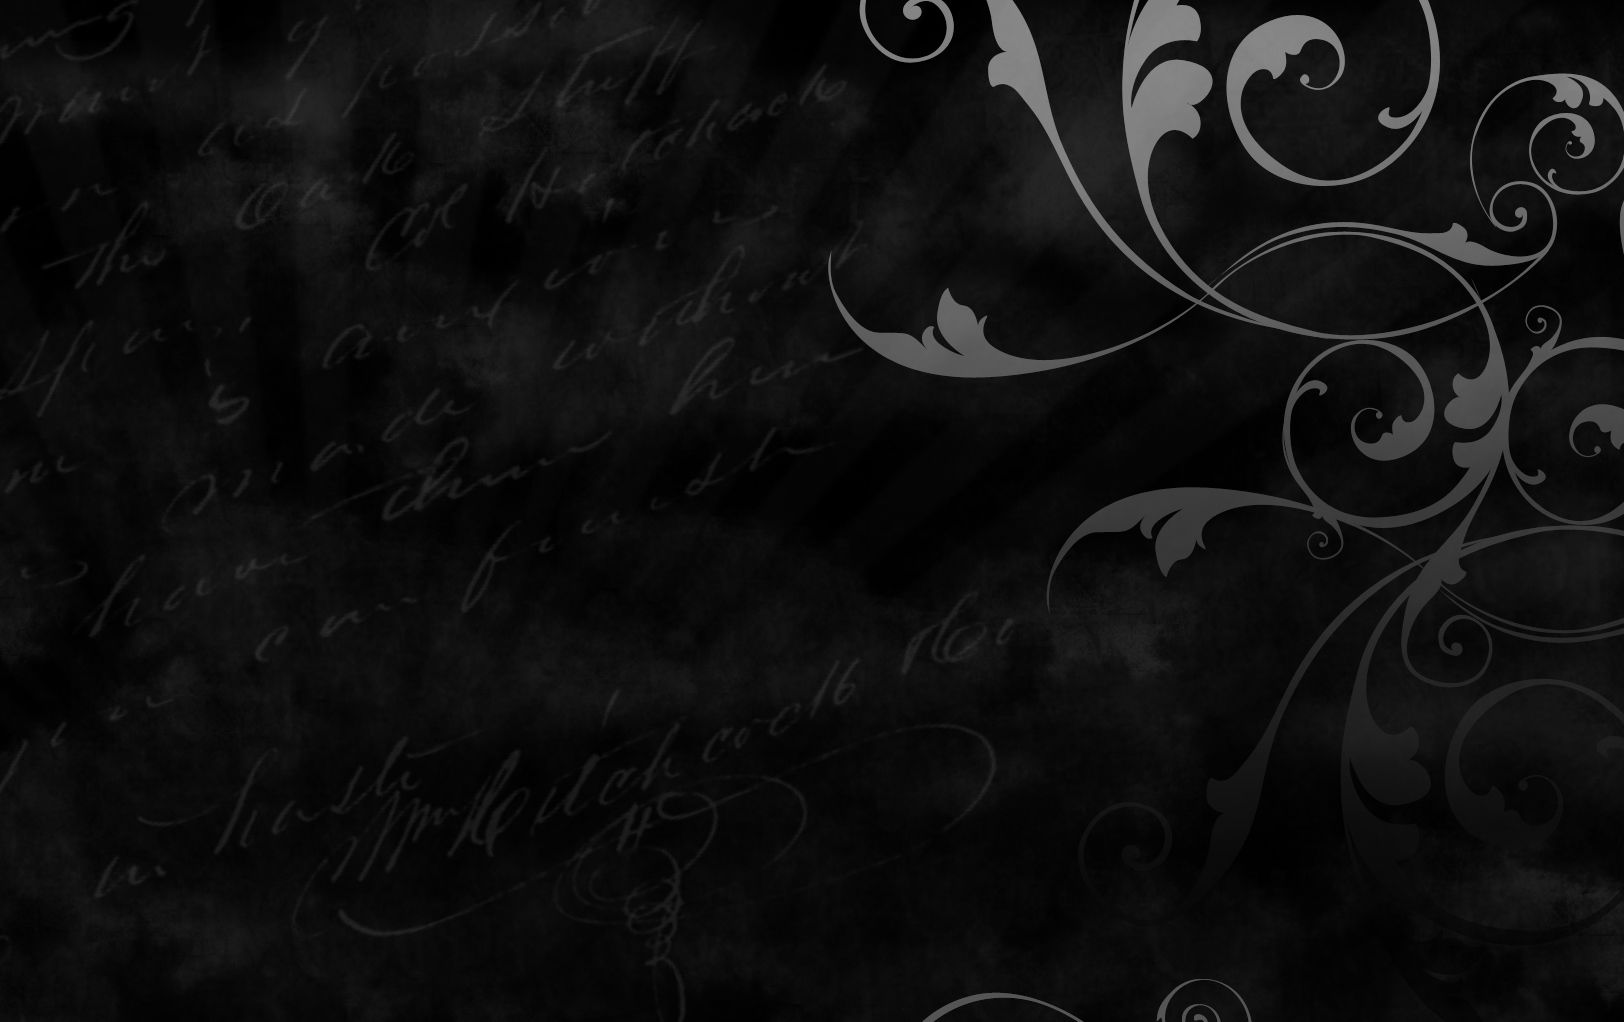 Hd Wallpapers Abstract Black Wallpaper Free Download 2014